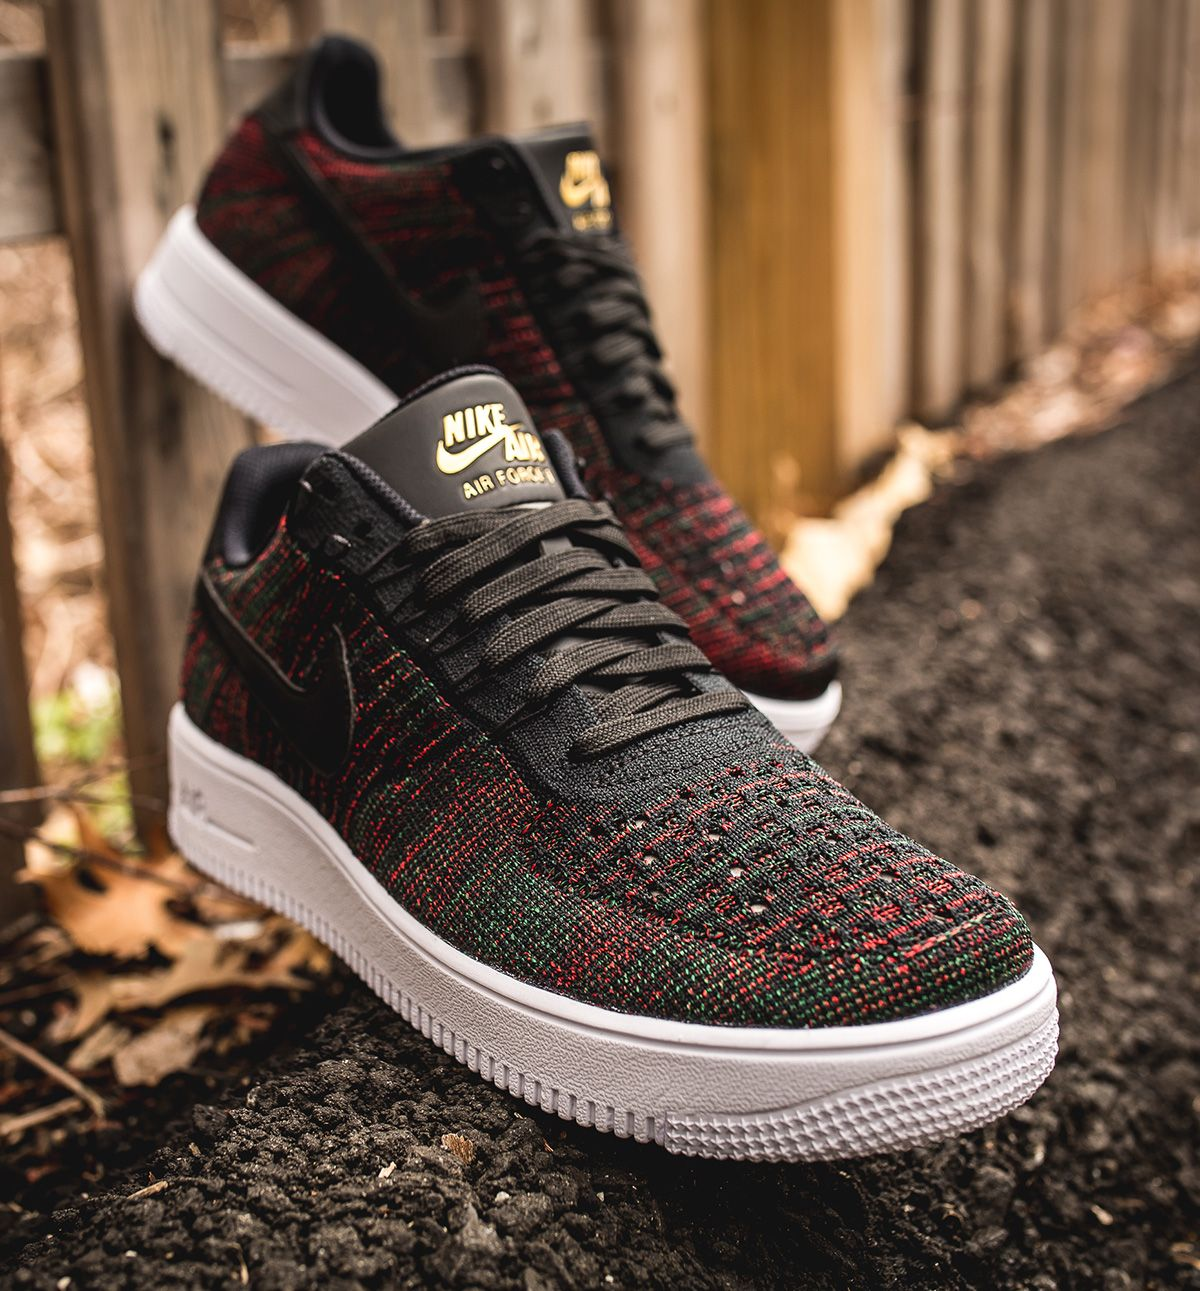 Nike Air Force 1 Ultra Flyknit Low in Gucci Colors Ropa